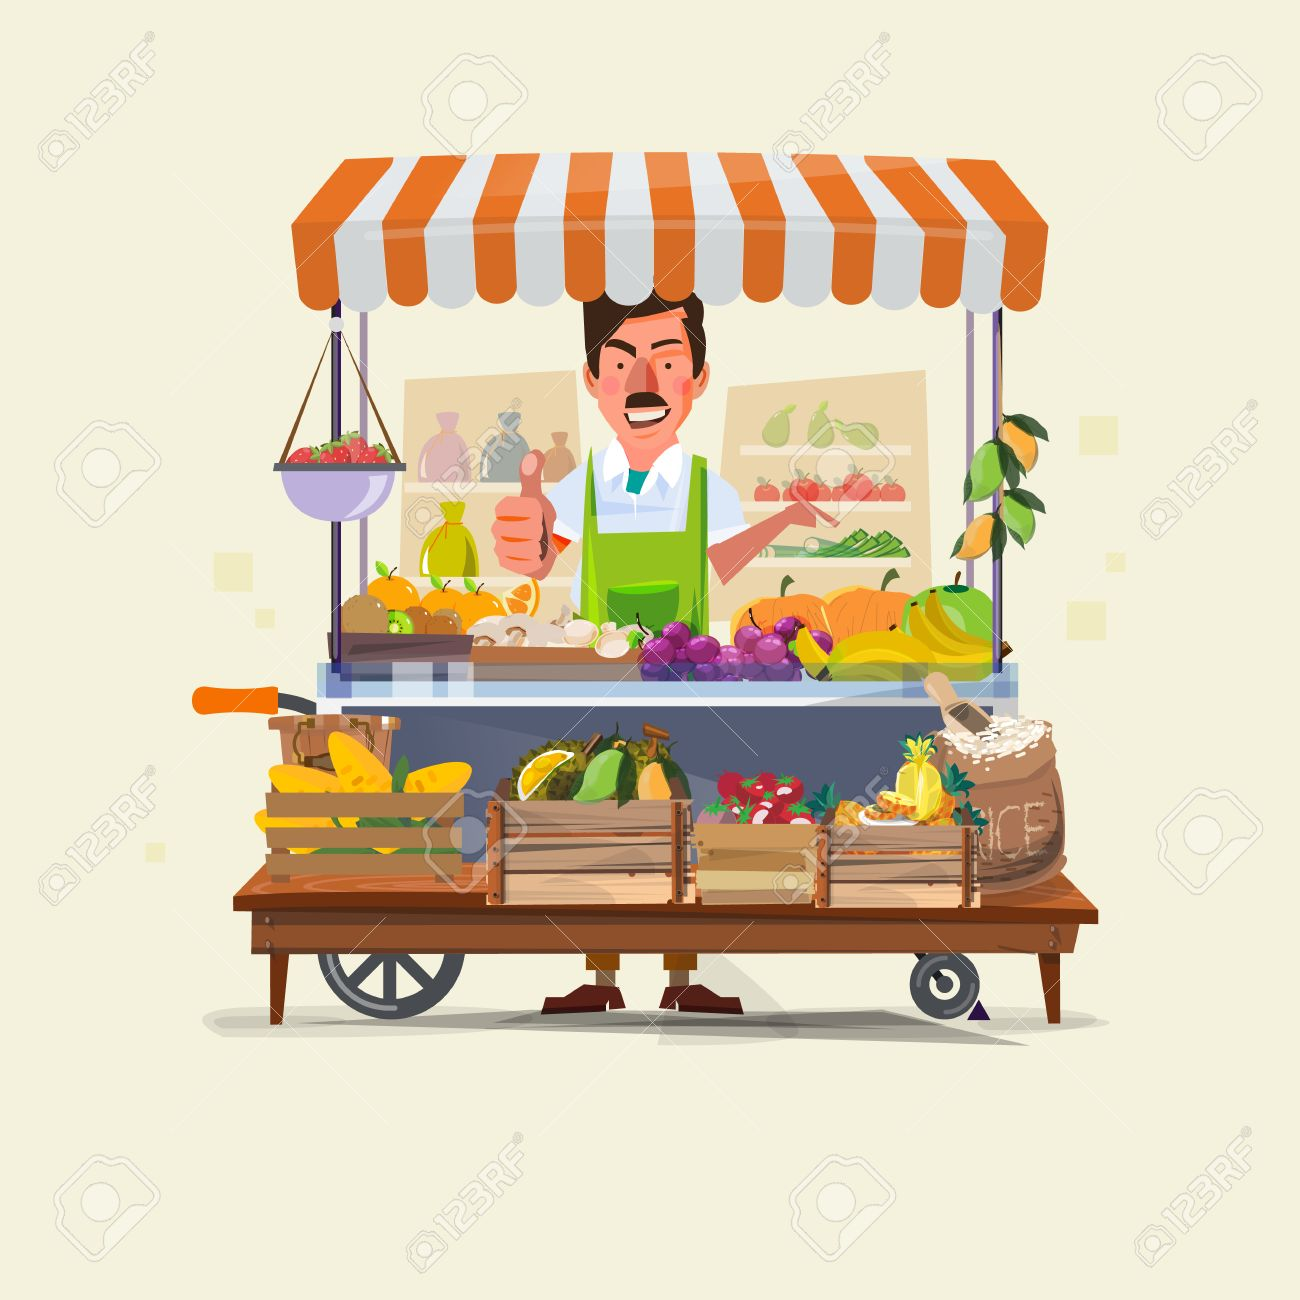 vegetables and fruits cart with seller character design. market cart. Green Carts sell only fresh fruits and vegetables. promote healthy eating concept - vector illustration - 56815374